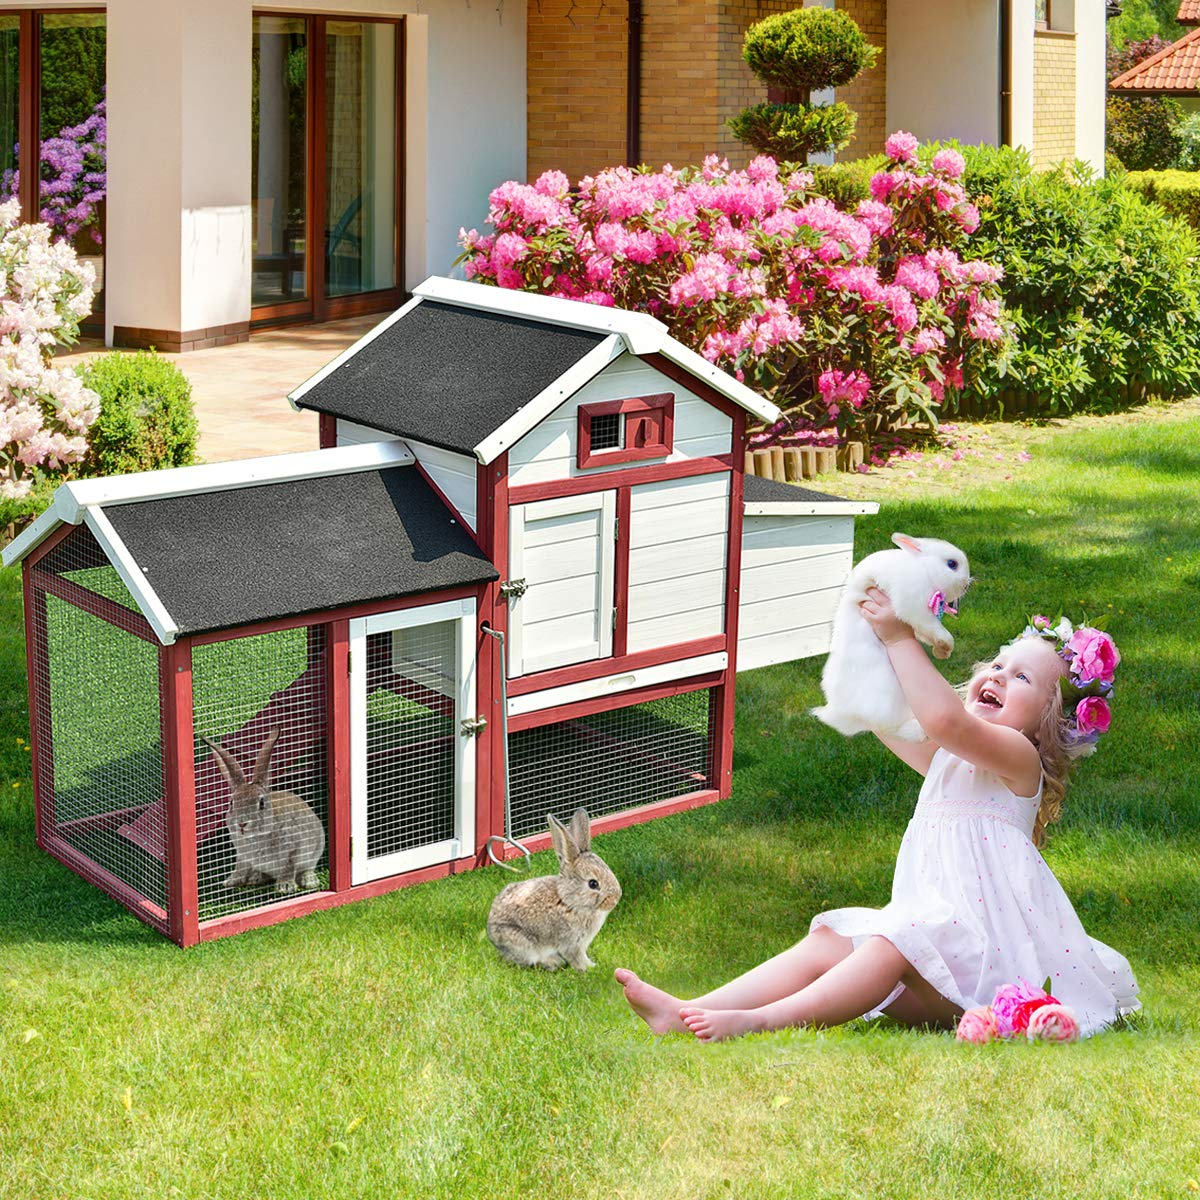 Tangkula 60'' Large Rabbit Hutch Wooden White Rabbit Bunny Outdoor Animal Cage Rabbit Hutch House with Black Linoleum Roof by Tangkula (Image #4)